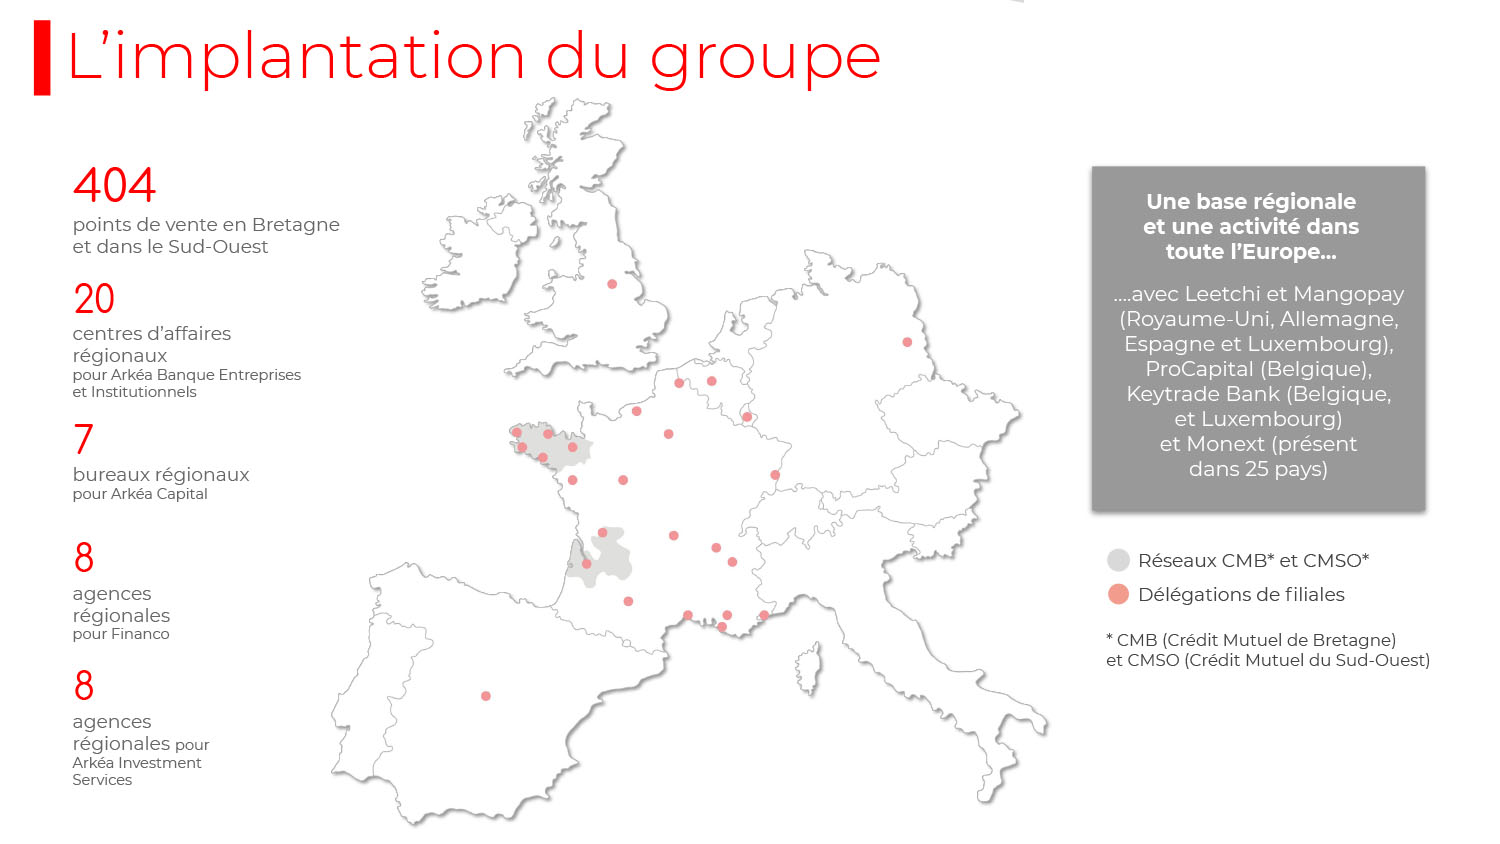 Carte d'implantation du groupe 2020